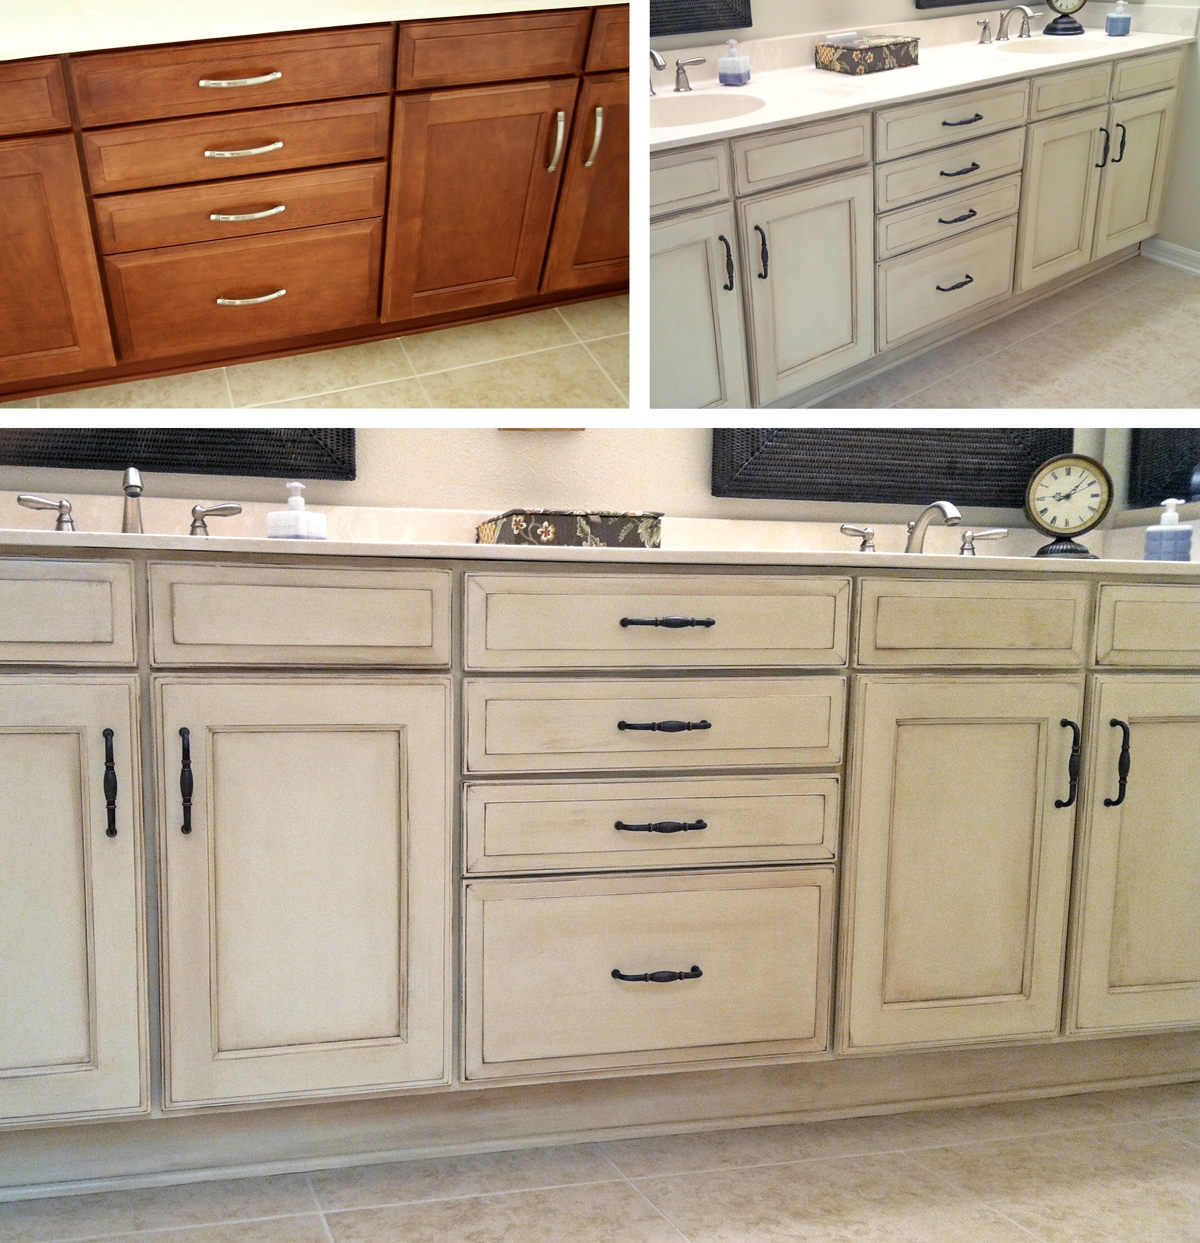 Permalink to Can You Use Kitchen Cabinets In A Bathroom